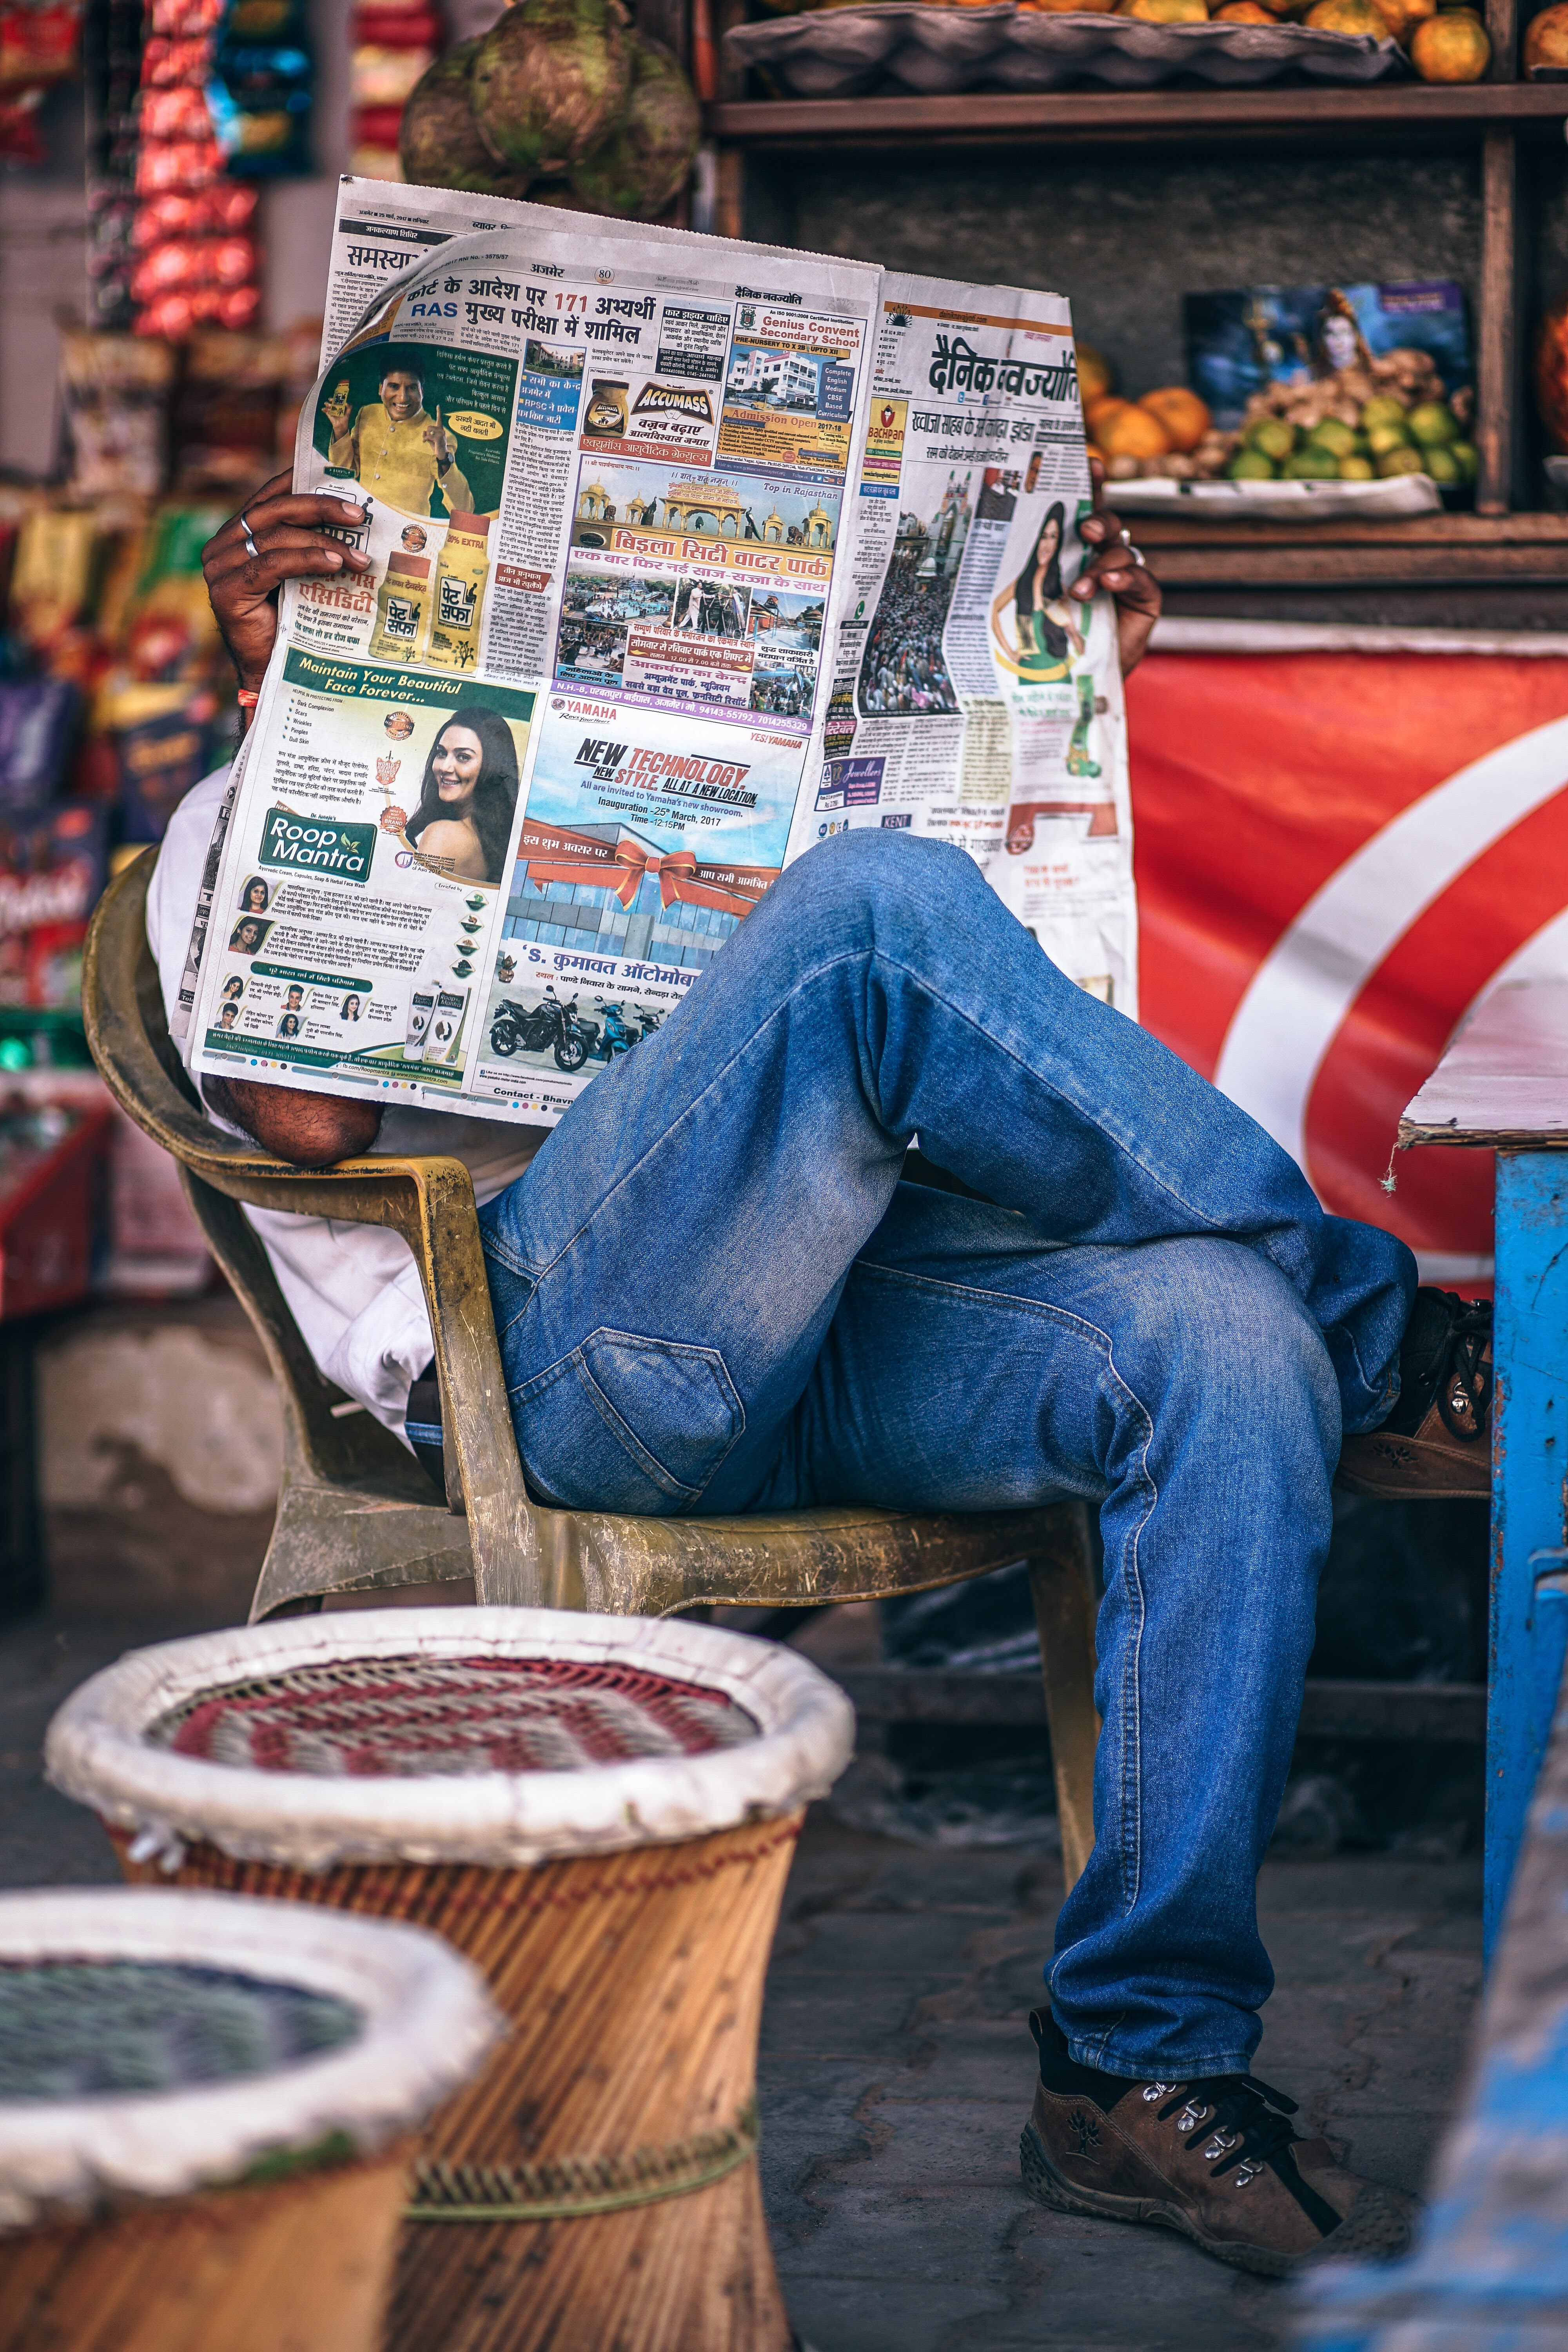 Man Sitting on Plastic Armchair Reading Newspaper, Person, Reading, Sale, Paper, HQ Photo